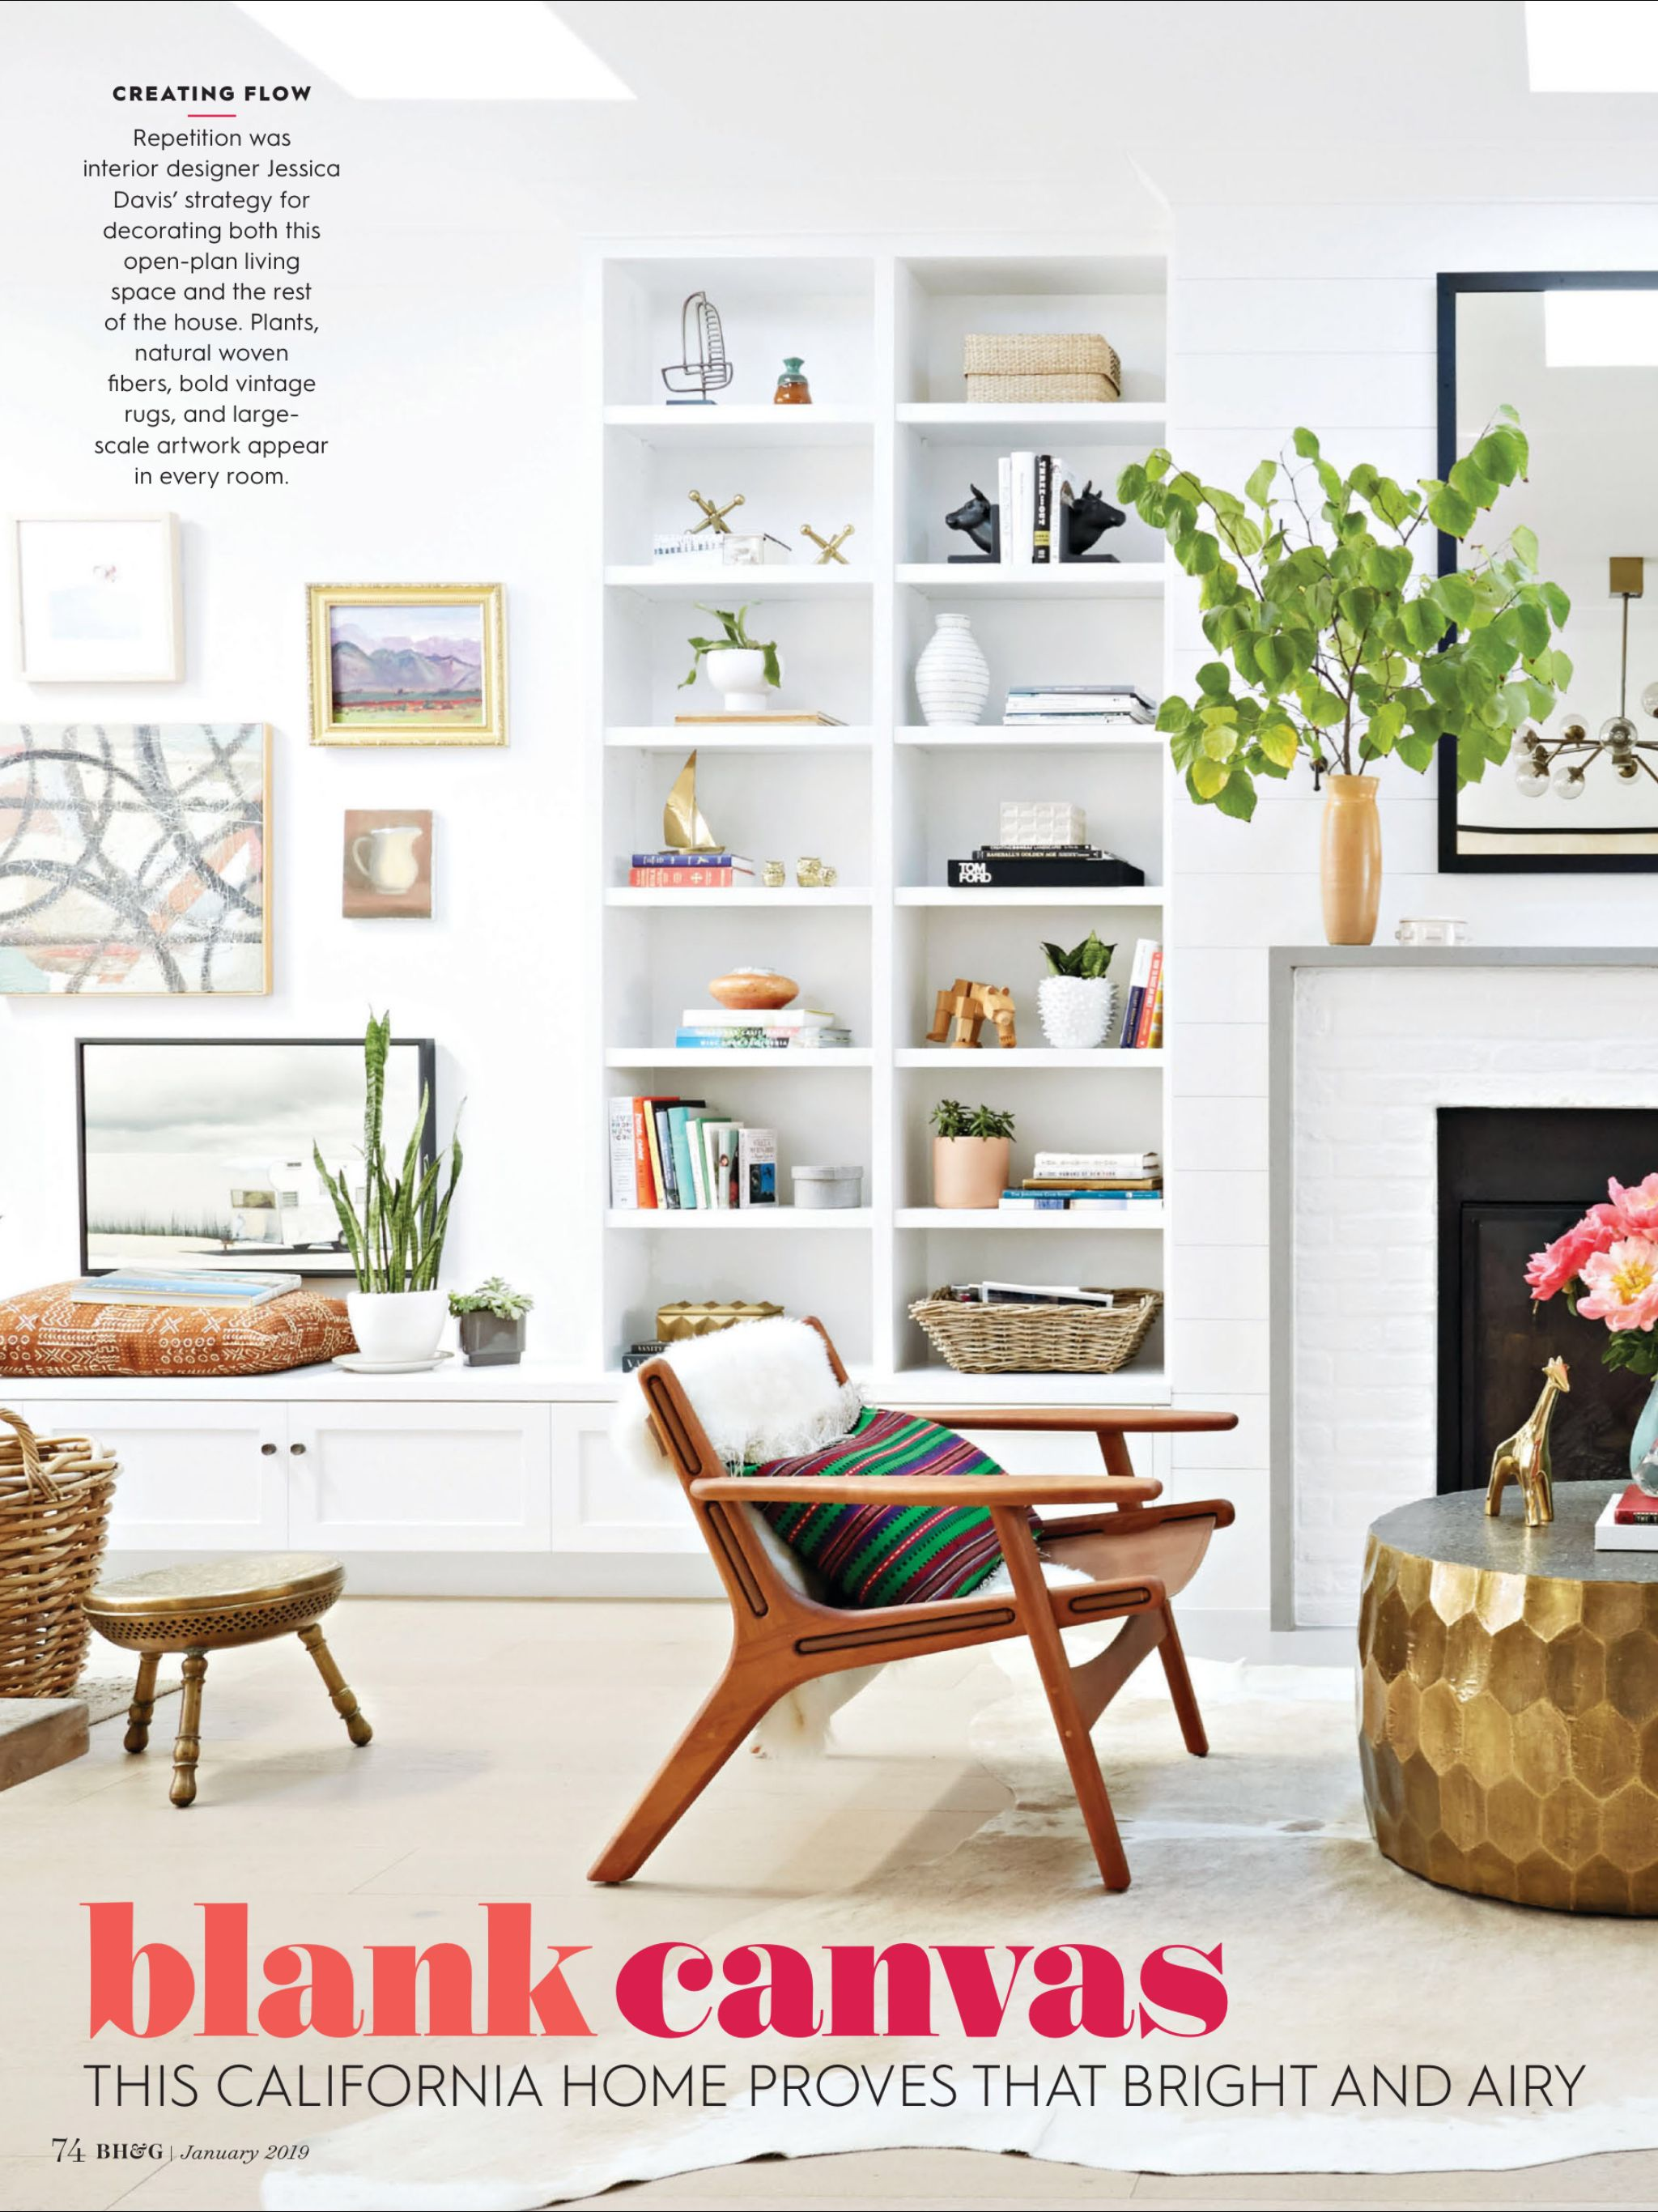 53a8aed2ddea1ae7e07cfb0eb5add5f8 - January 2019 Better Homes And Gardens Magazine